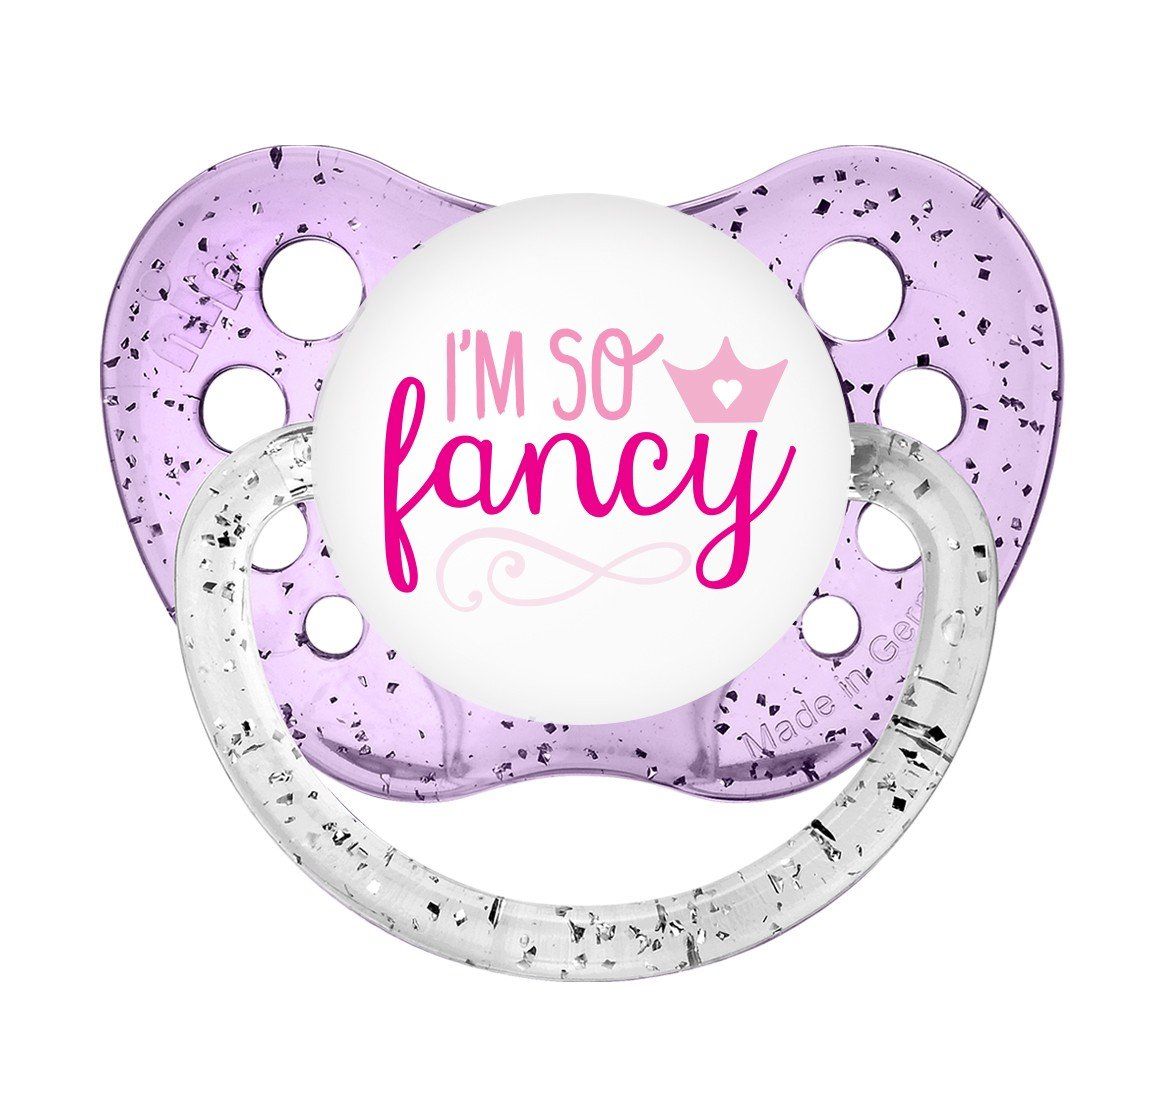 I'm So Fancy Binky - Ulubulu - 6+ months - Girls - Little Girl Soother - Glitter Pacifier